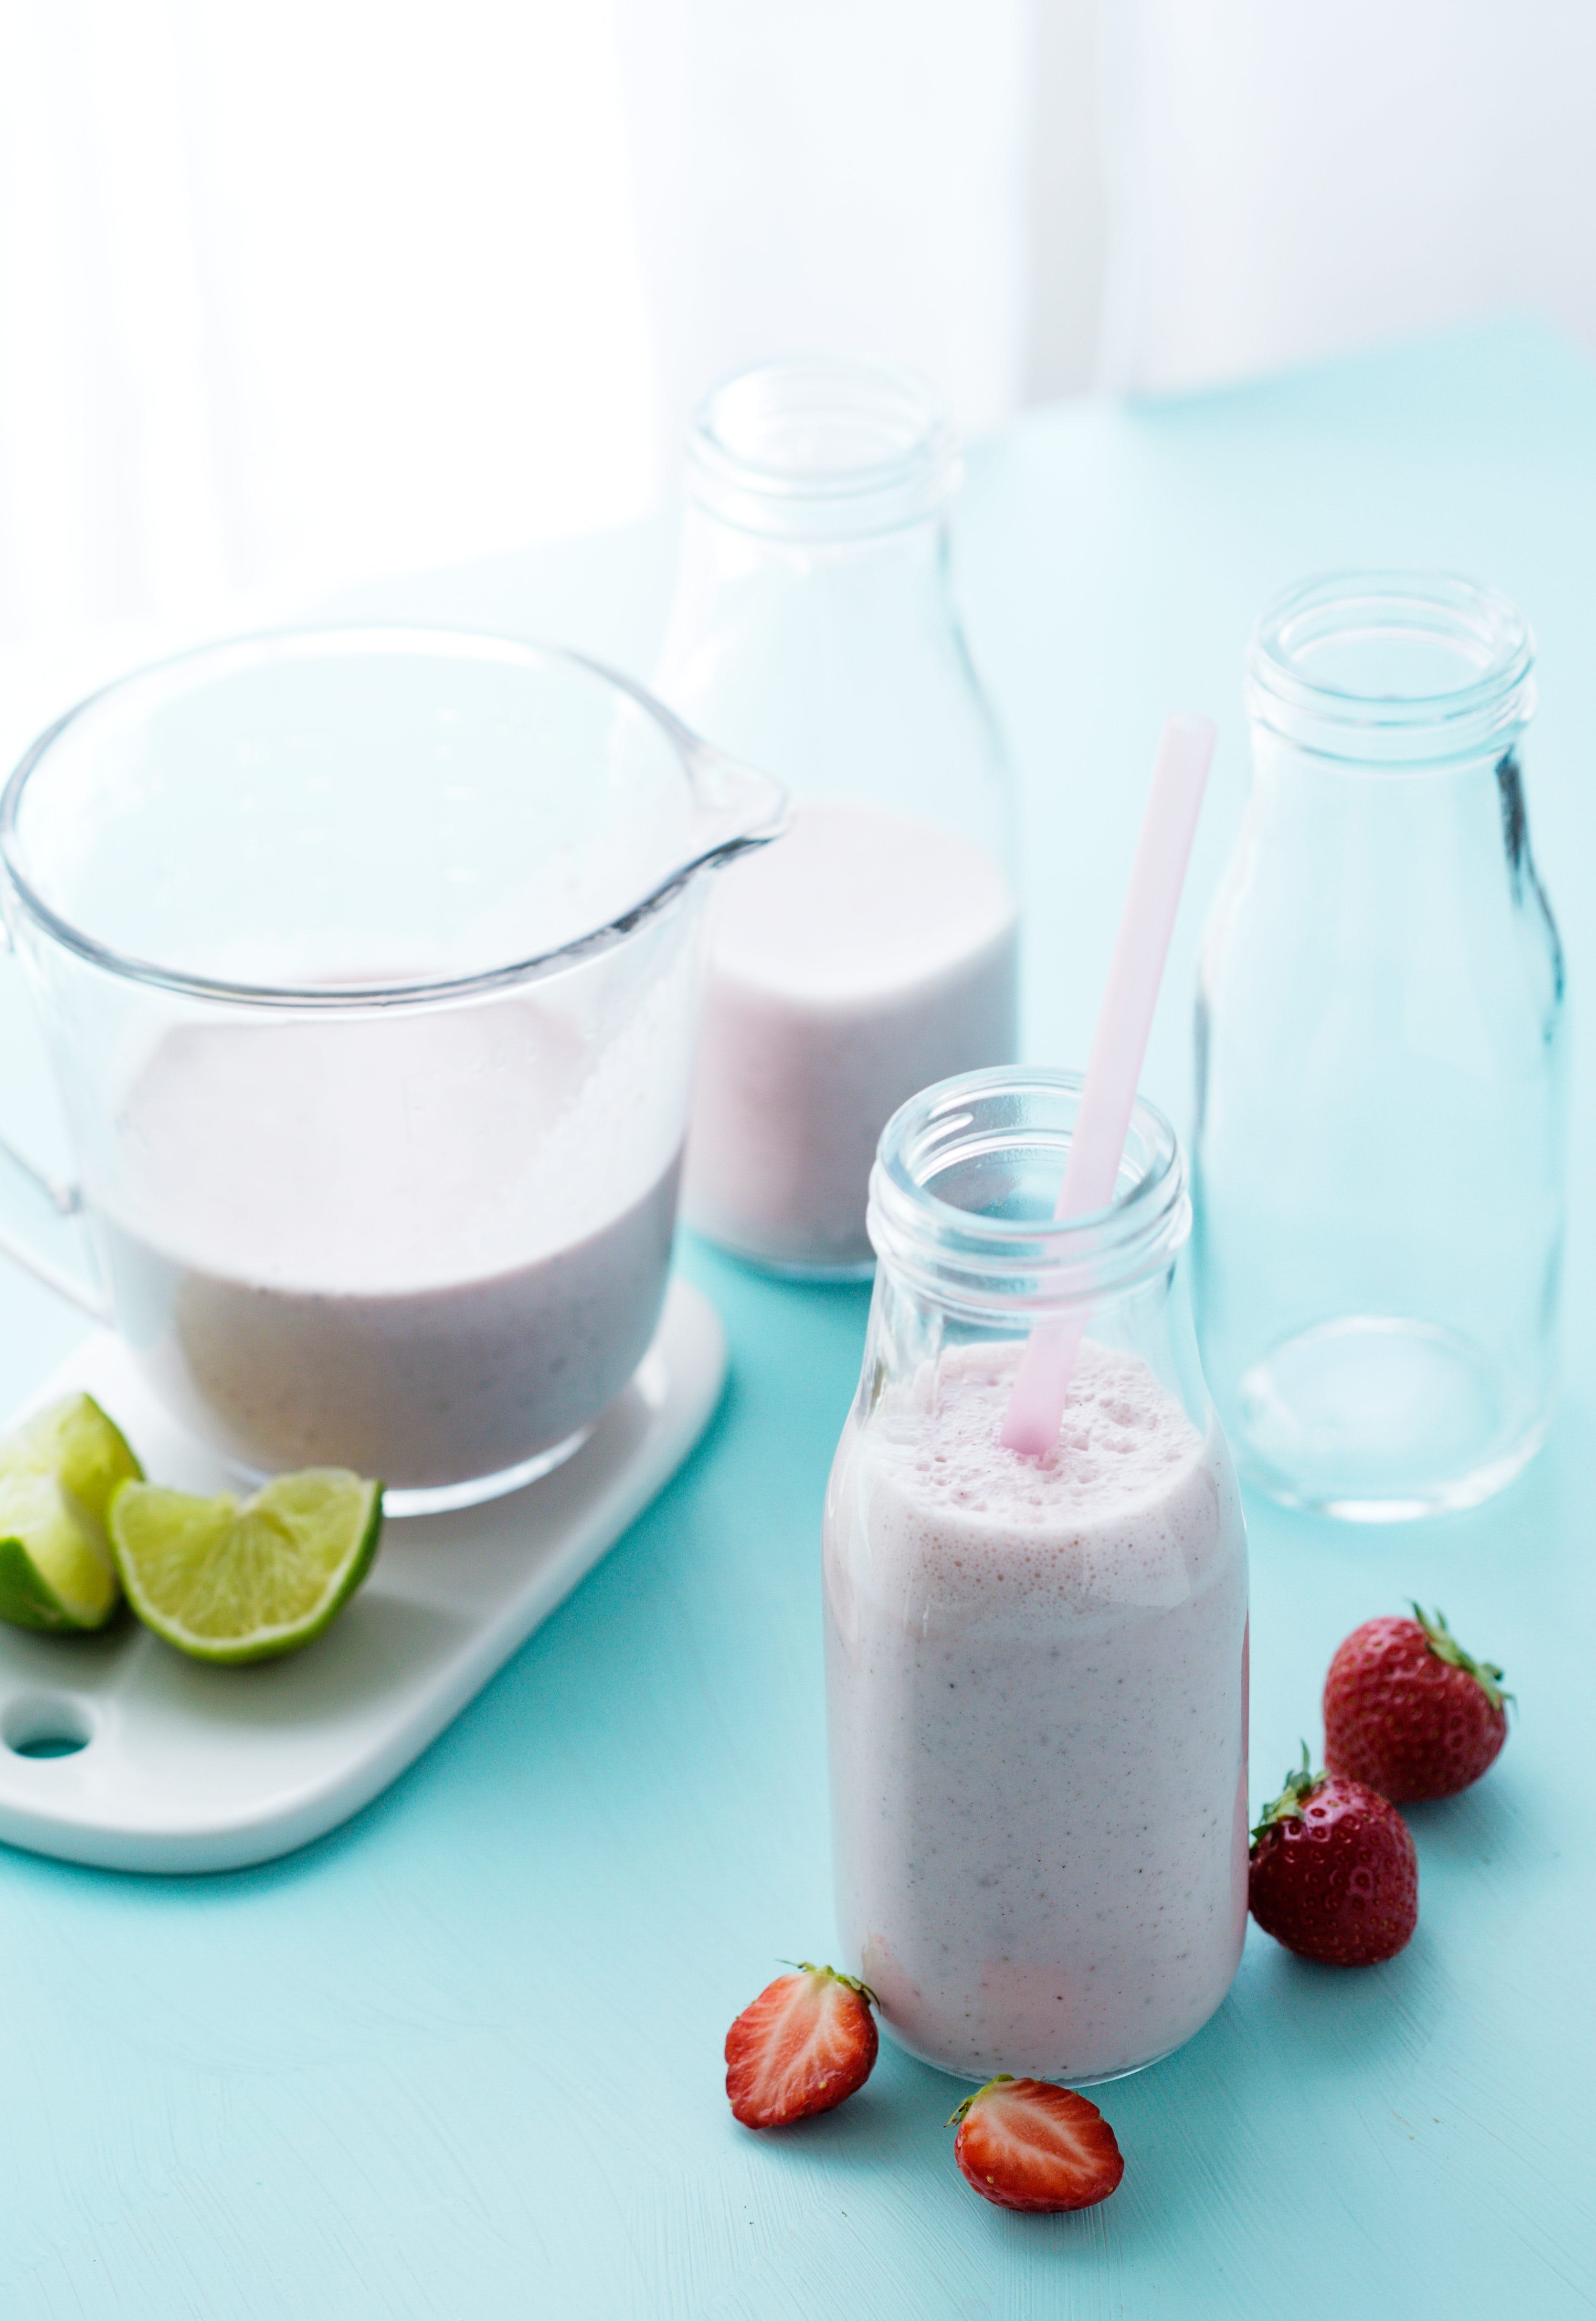 Low-carb strawberry smoothie